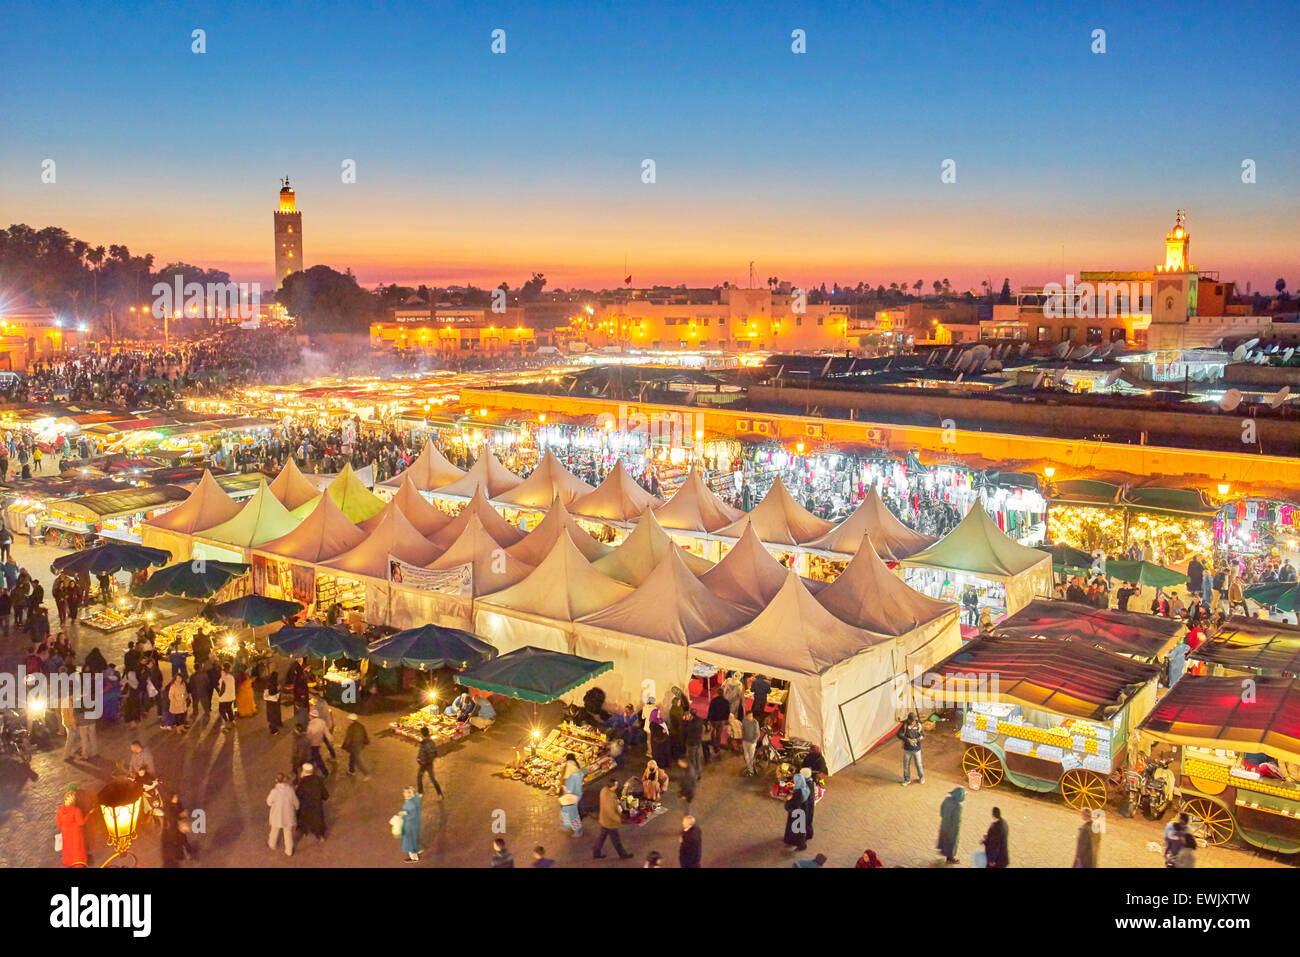 Djemaa el-Fna square at dusk, Marrakech, Morocco, Africa Stock Photo